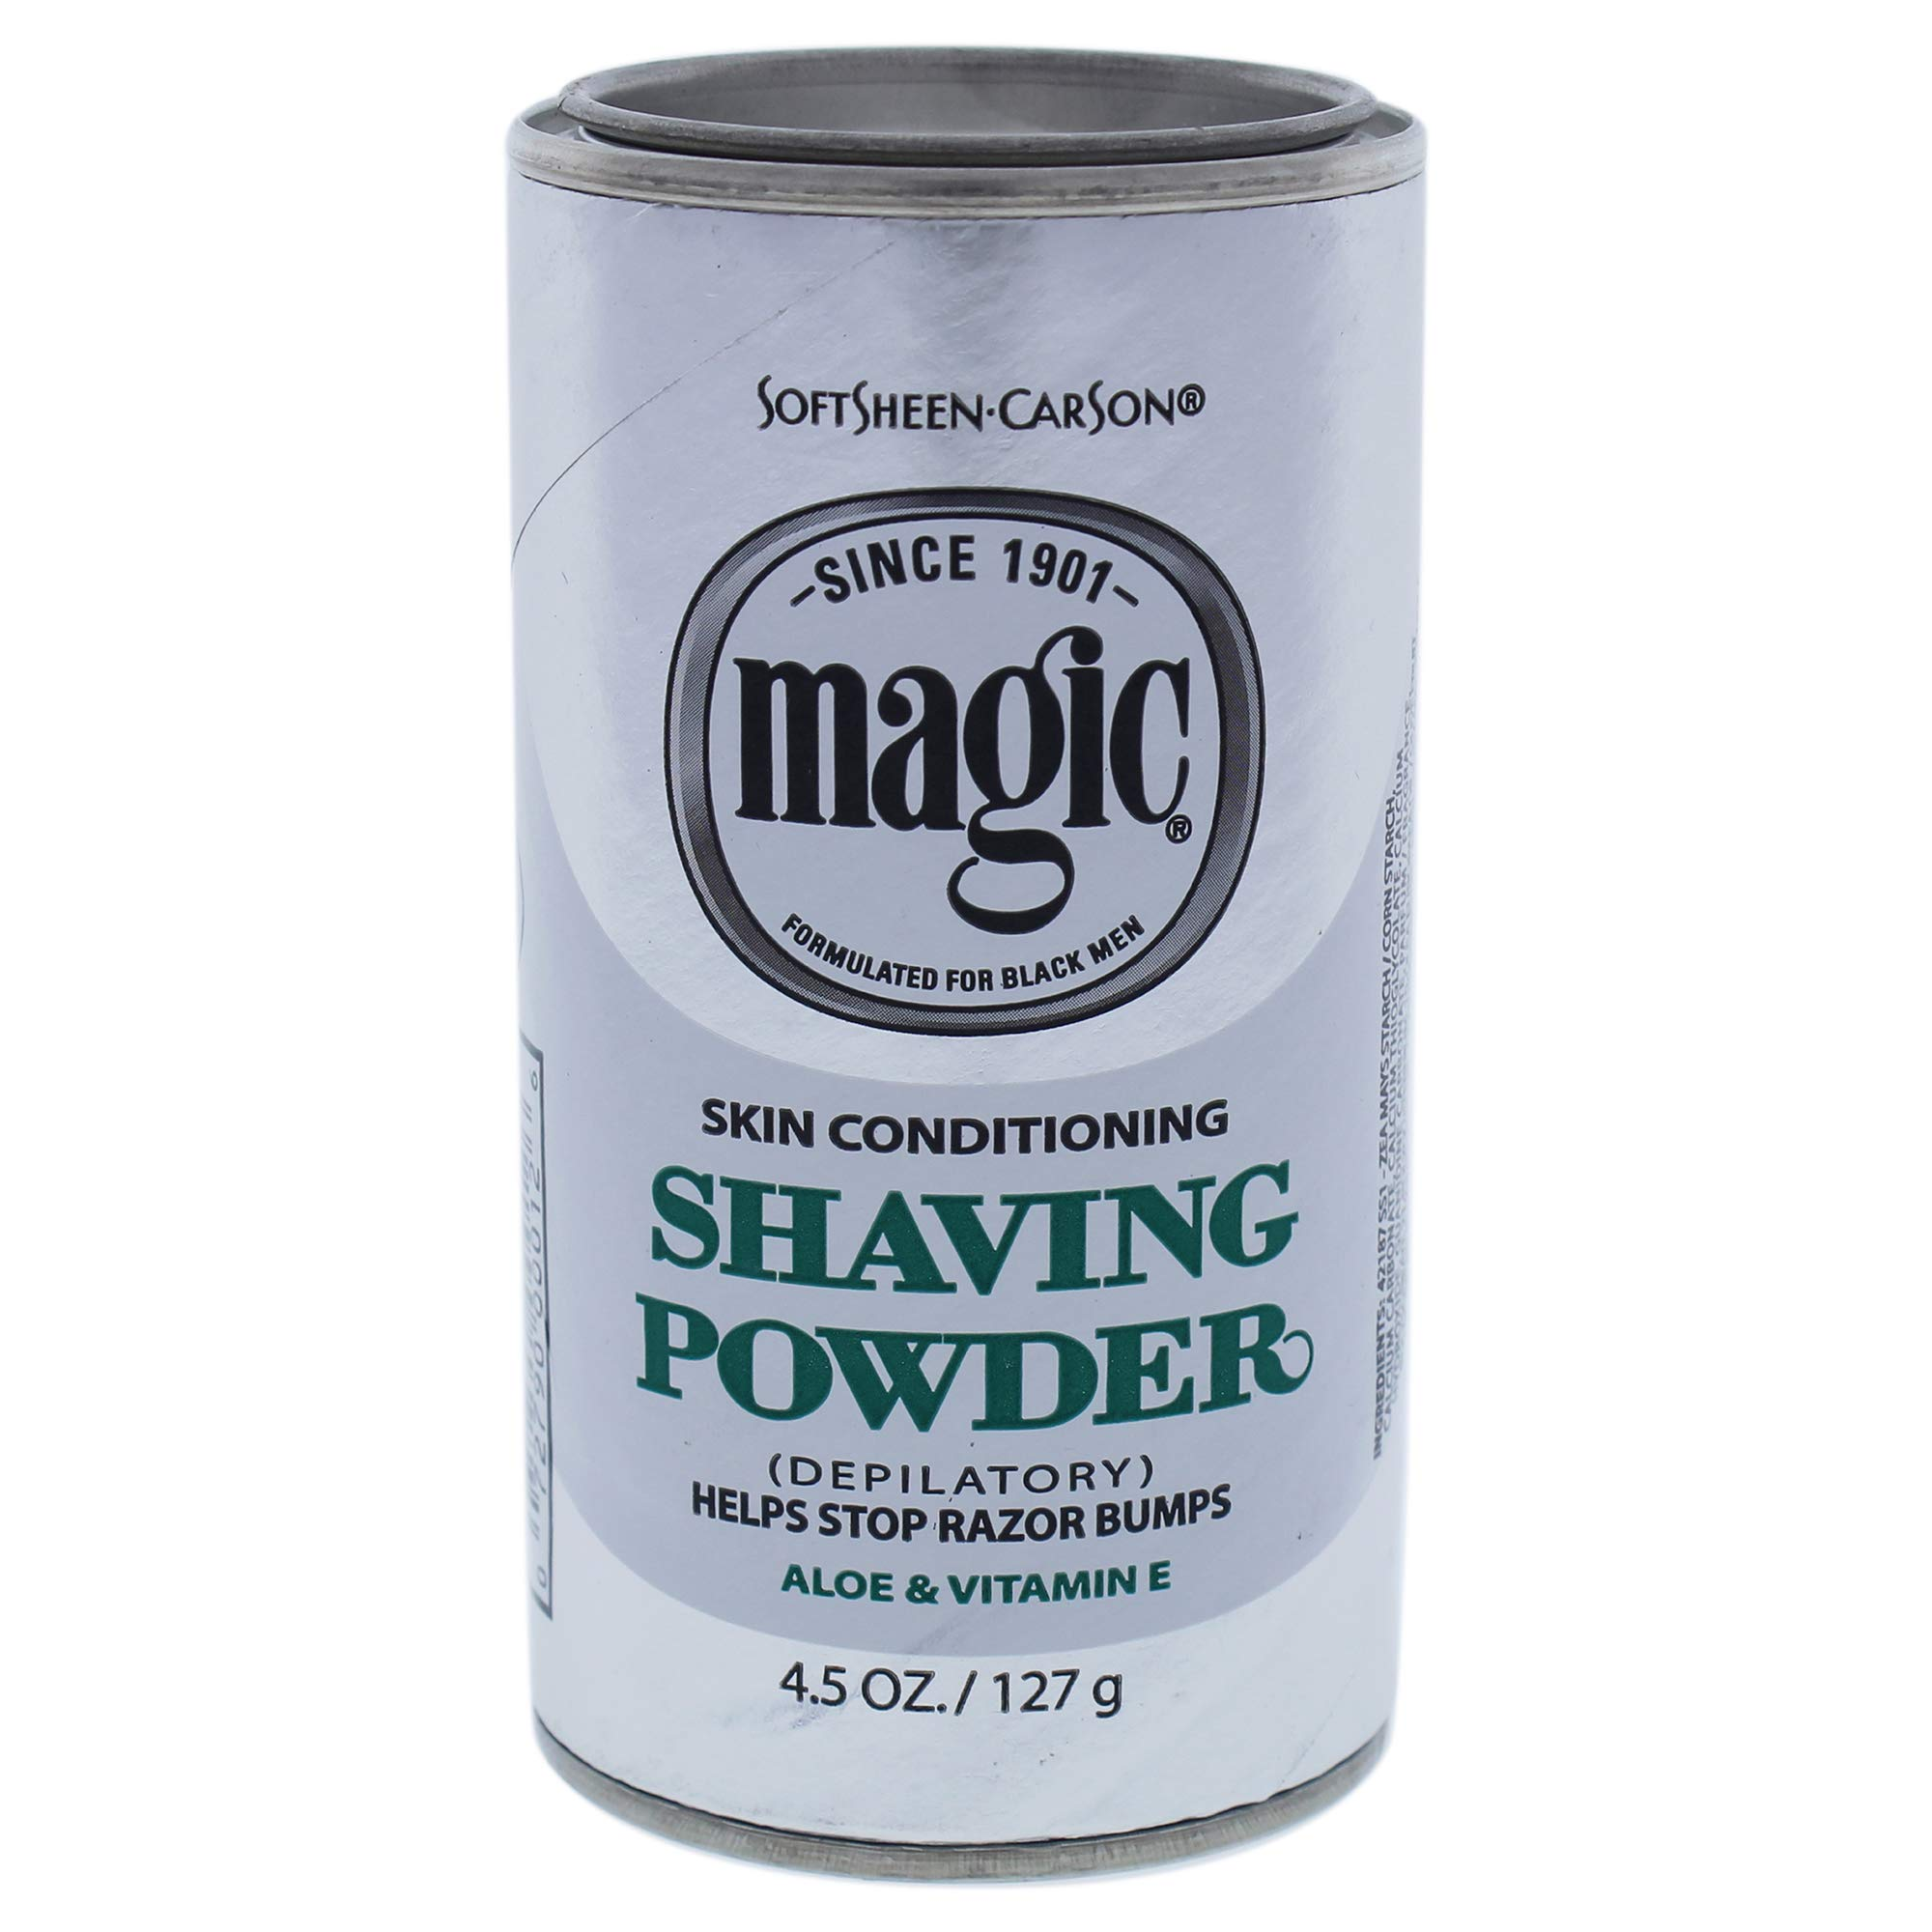 Razorless Shaving for Men by SoftSheen-Carson Magic Skin Conditioning Shaving Powder, with Vitamin E and Aloe, Formulated for Black Men, Depilatory, Helps Stop Razor Bumps, 4.5 Ounce